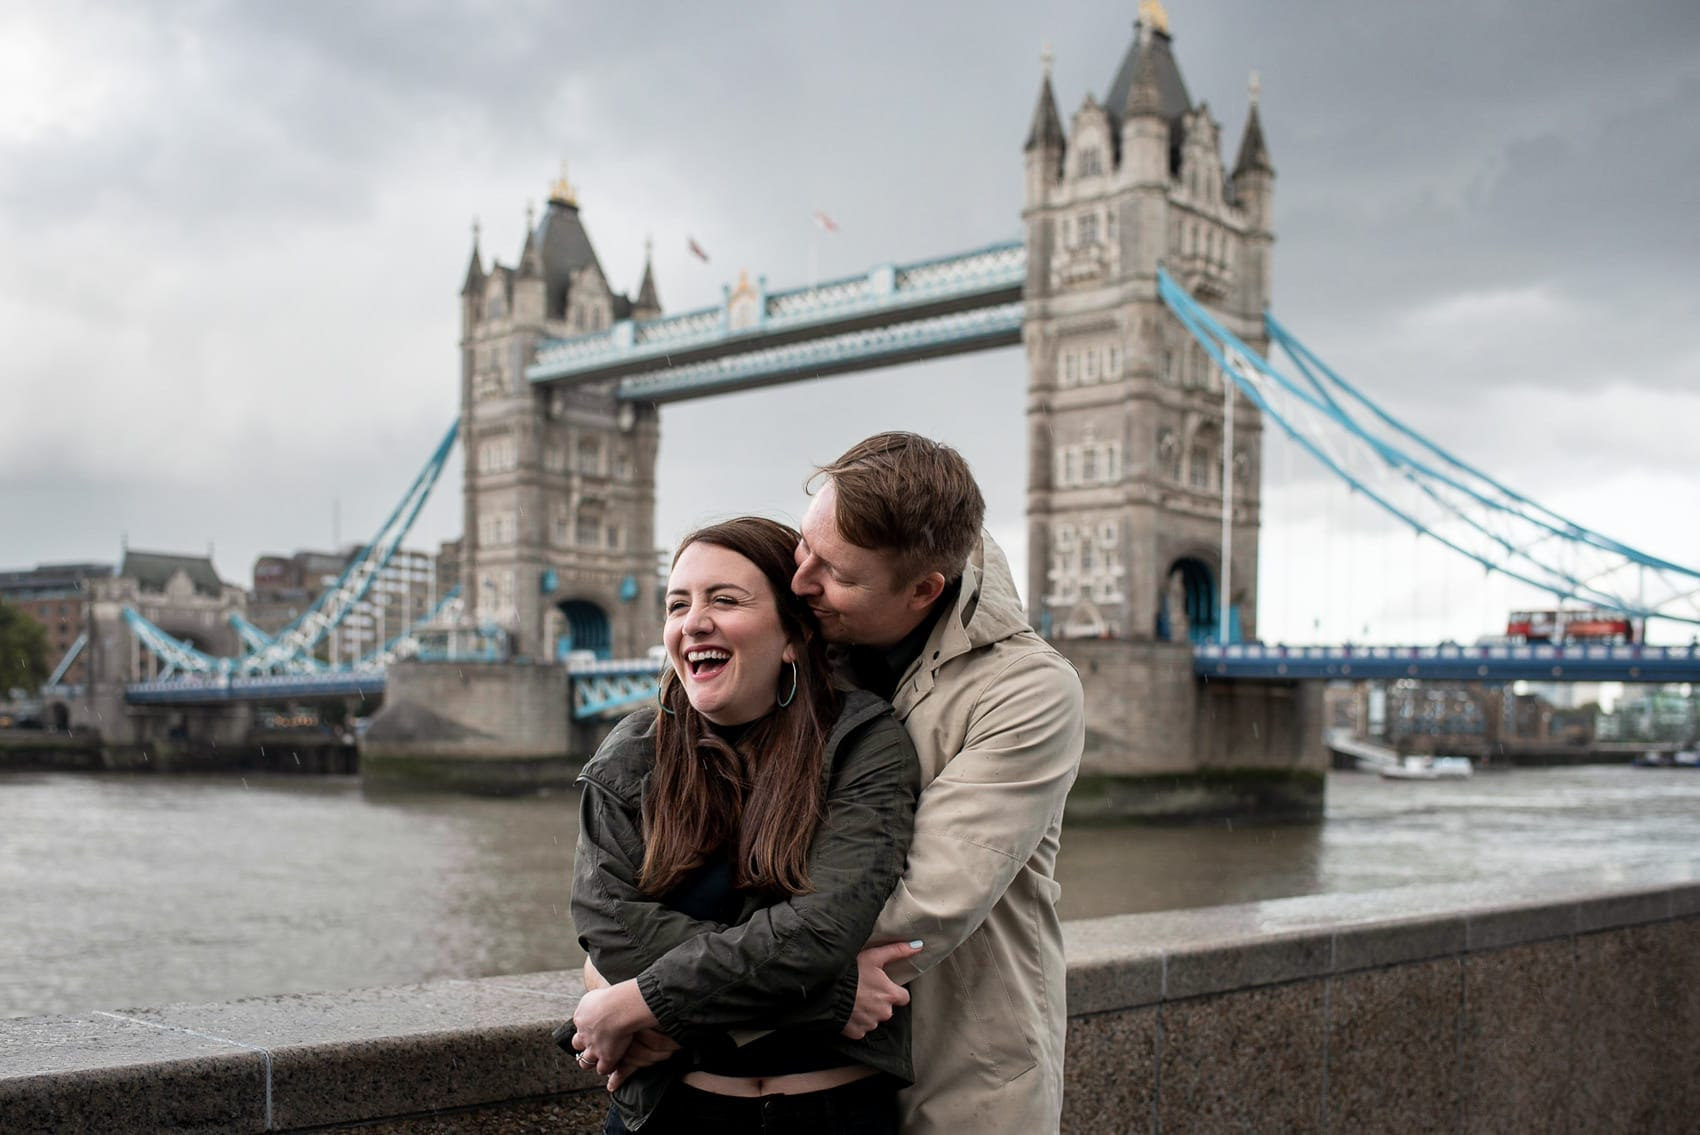 Photo of couple laughing and hugging next to the Tower of London on a wet and cloudy day